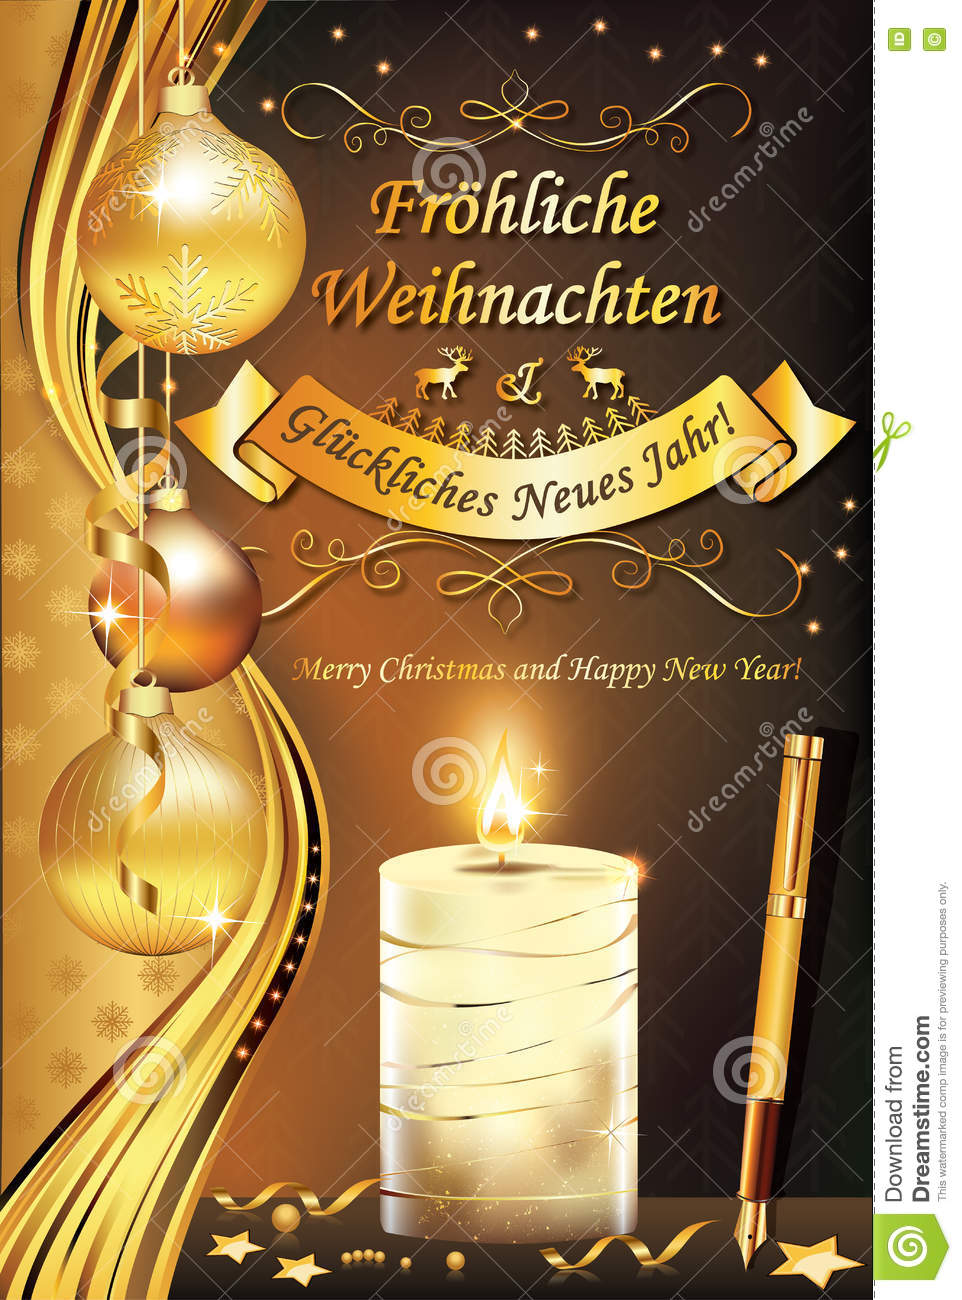 German greeting card merry christmas and happy new year stock download german greeting card merry christmas and happy new year stock photo image m4hsunfo